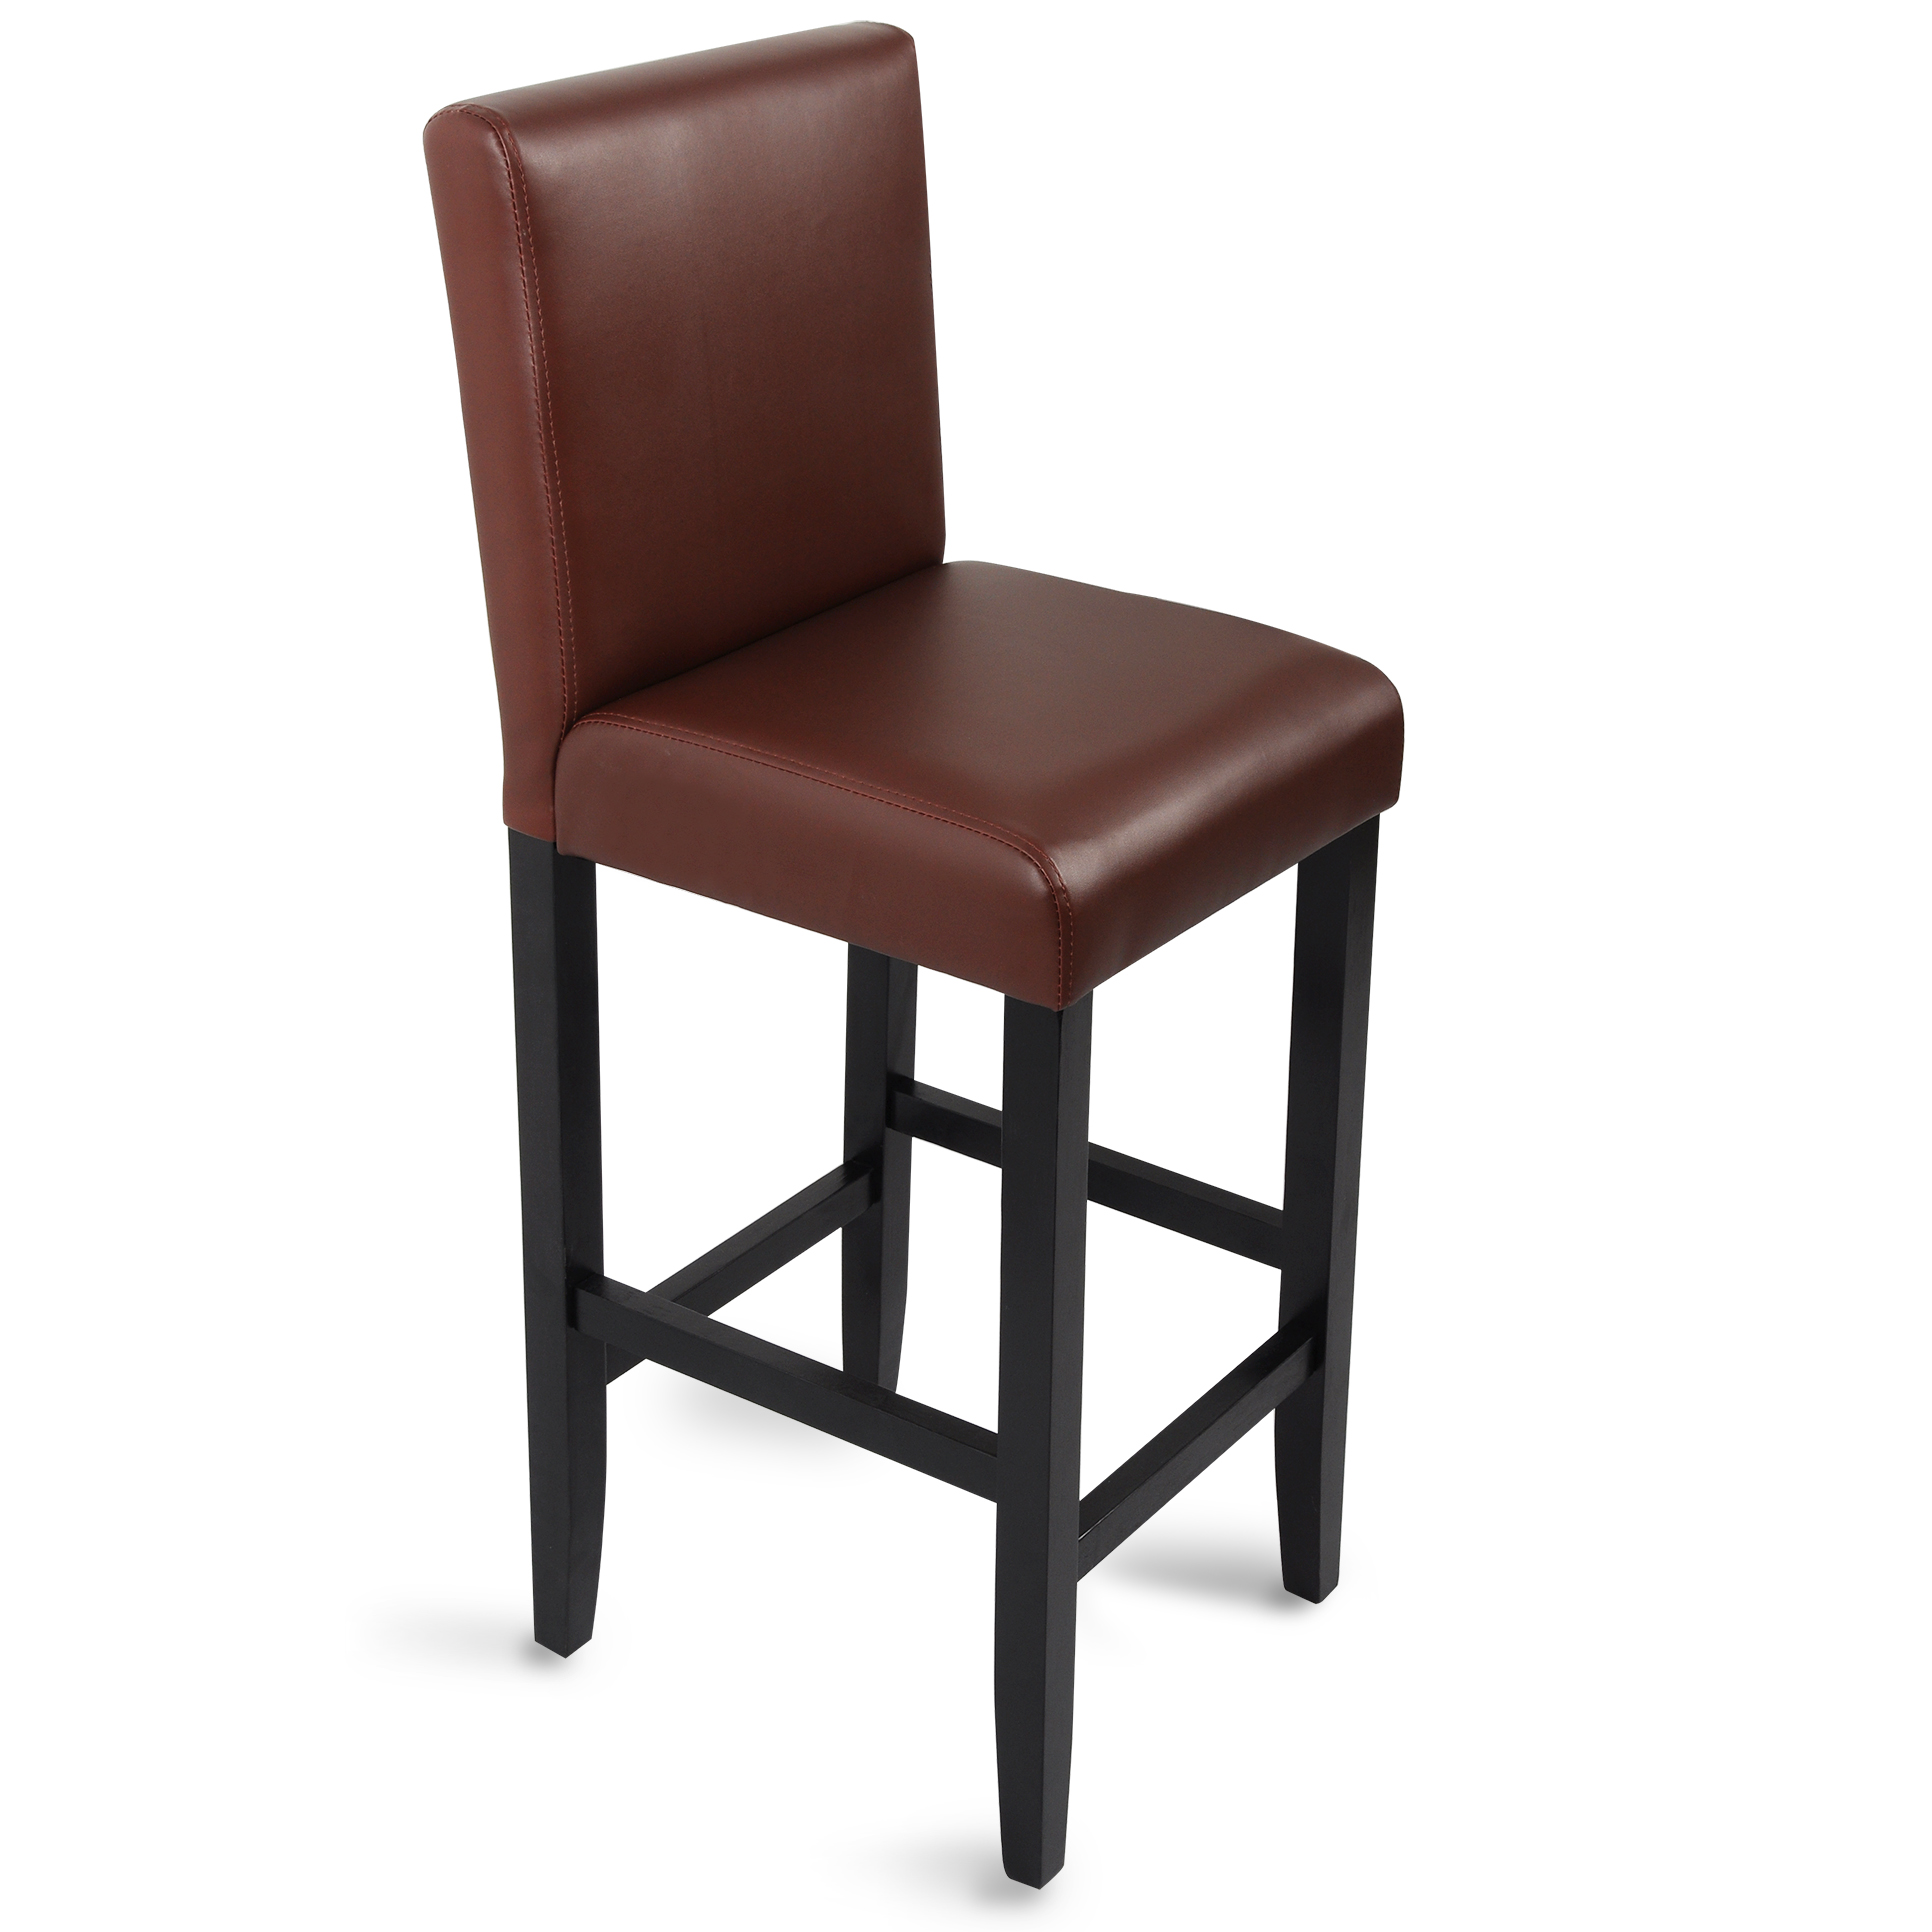 Bar stools barstool wood breakfast kitchen adjustable for Stool chair